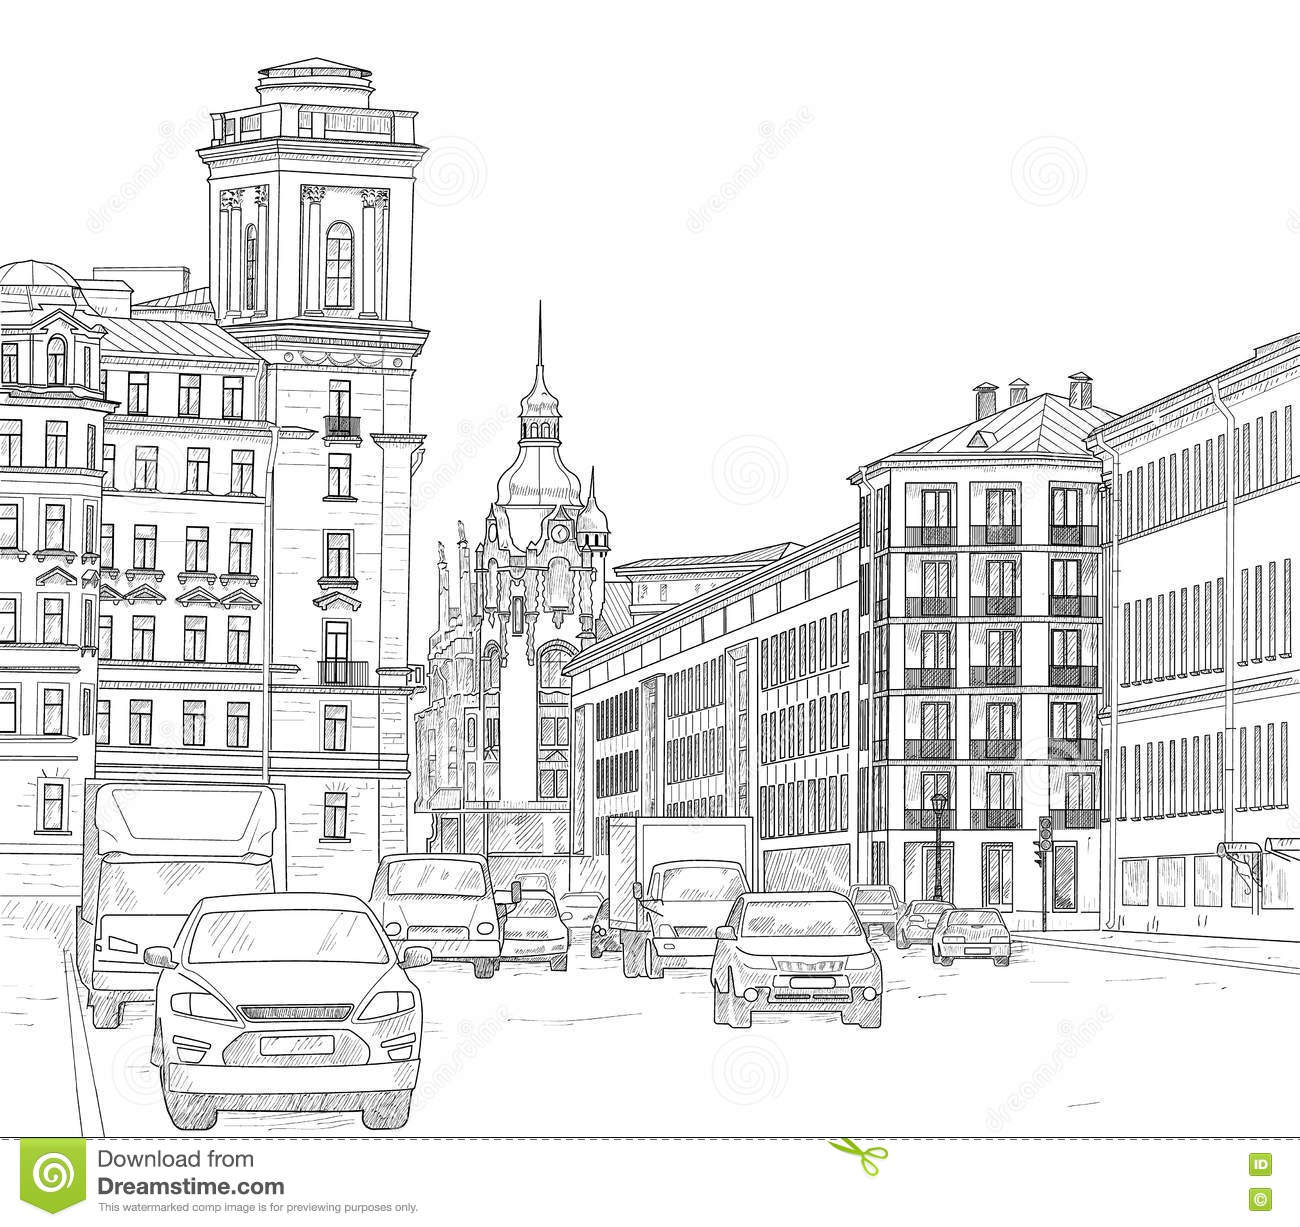 Architecture Drawing Cars drawing a city street stock vector - image: 76444105